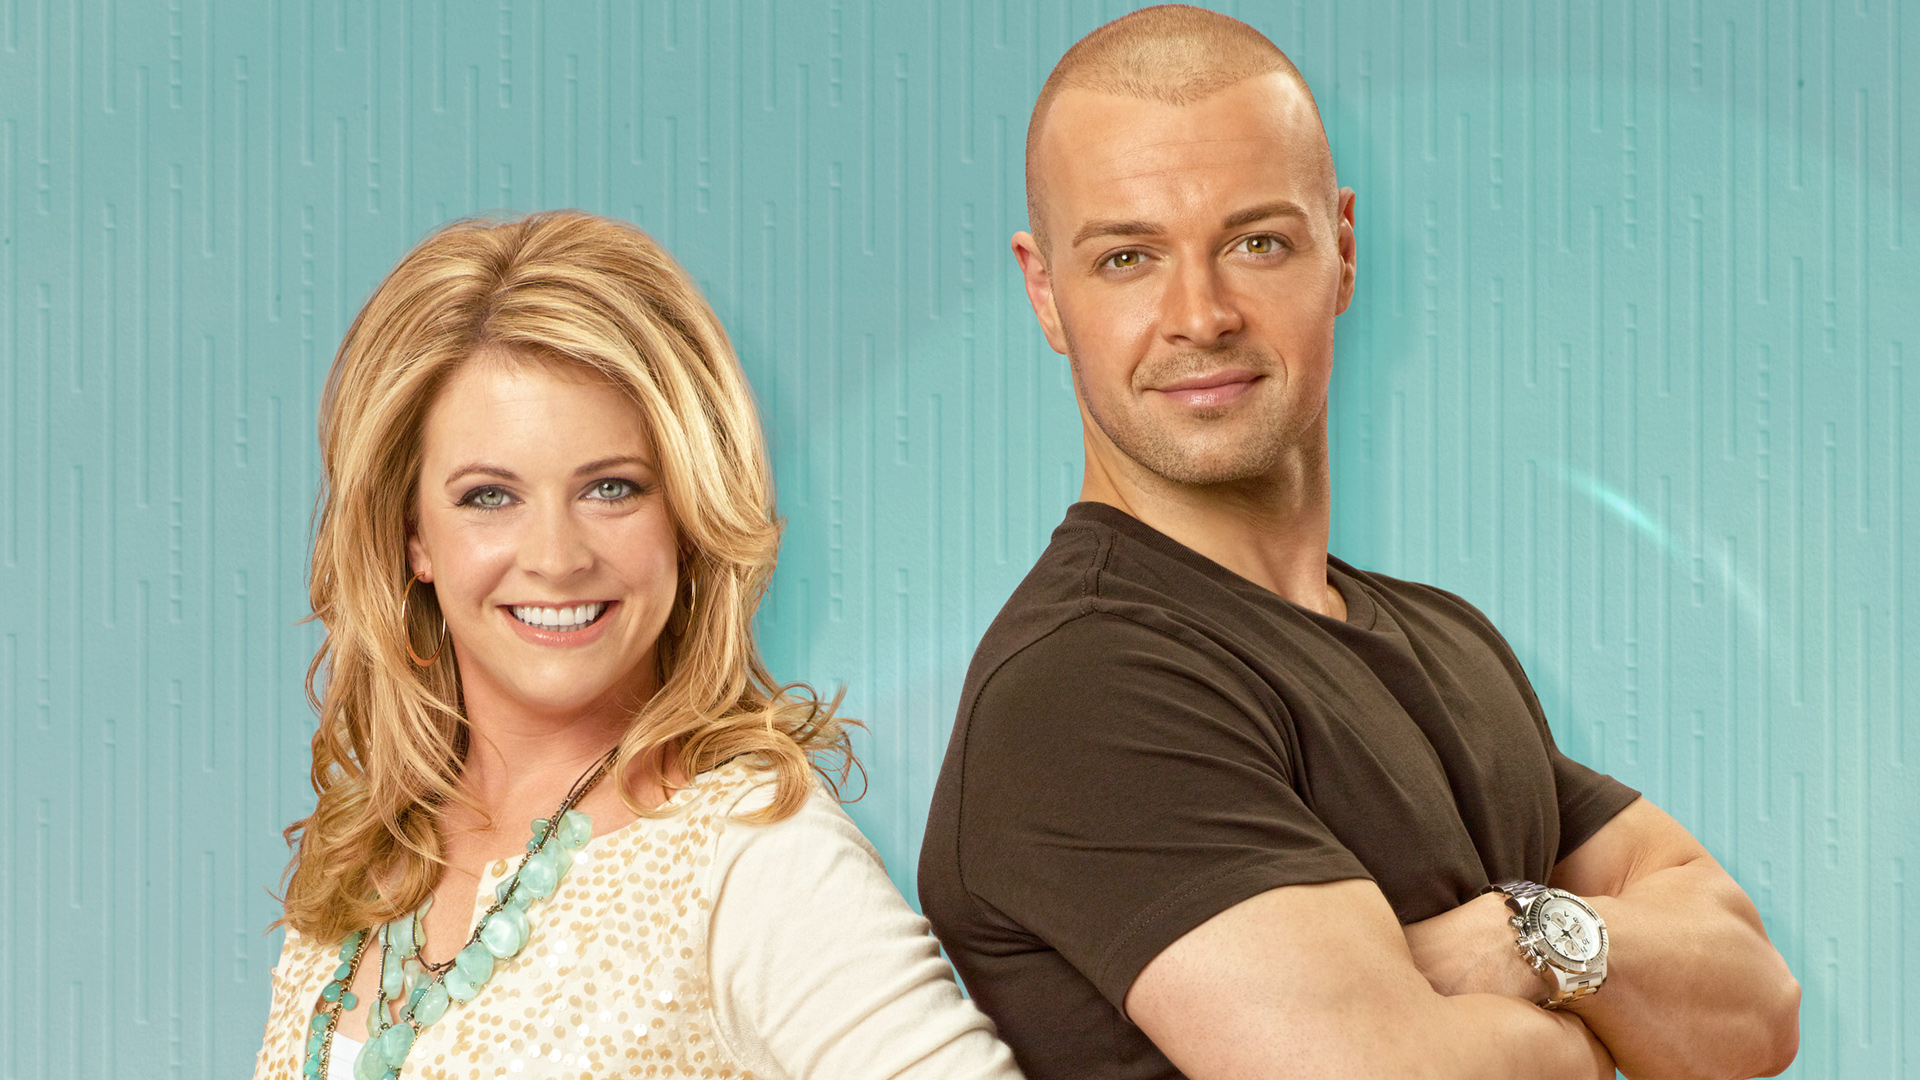 when does melissa and joey start dating